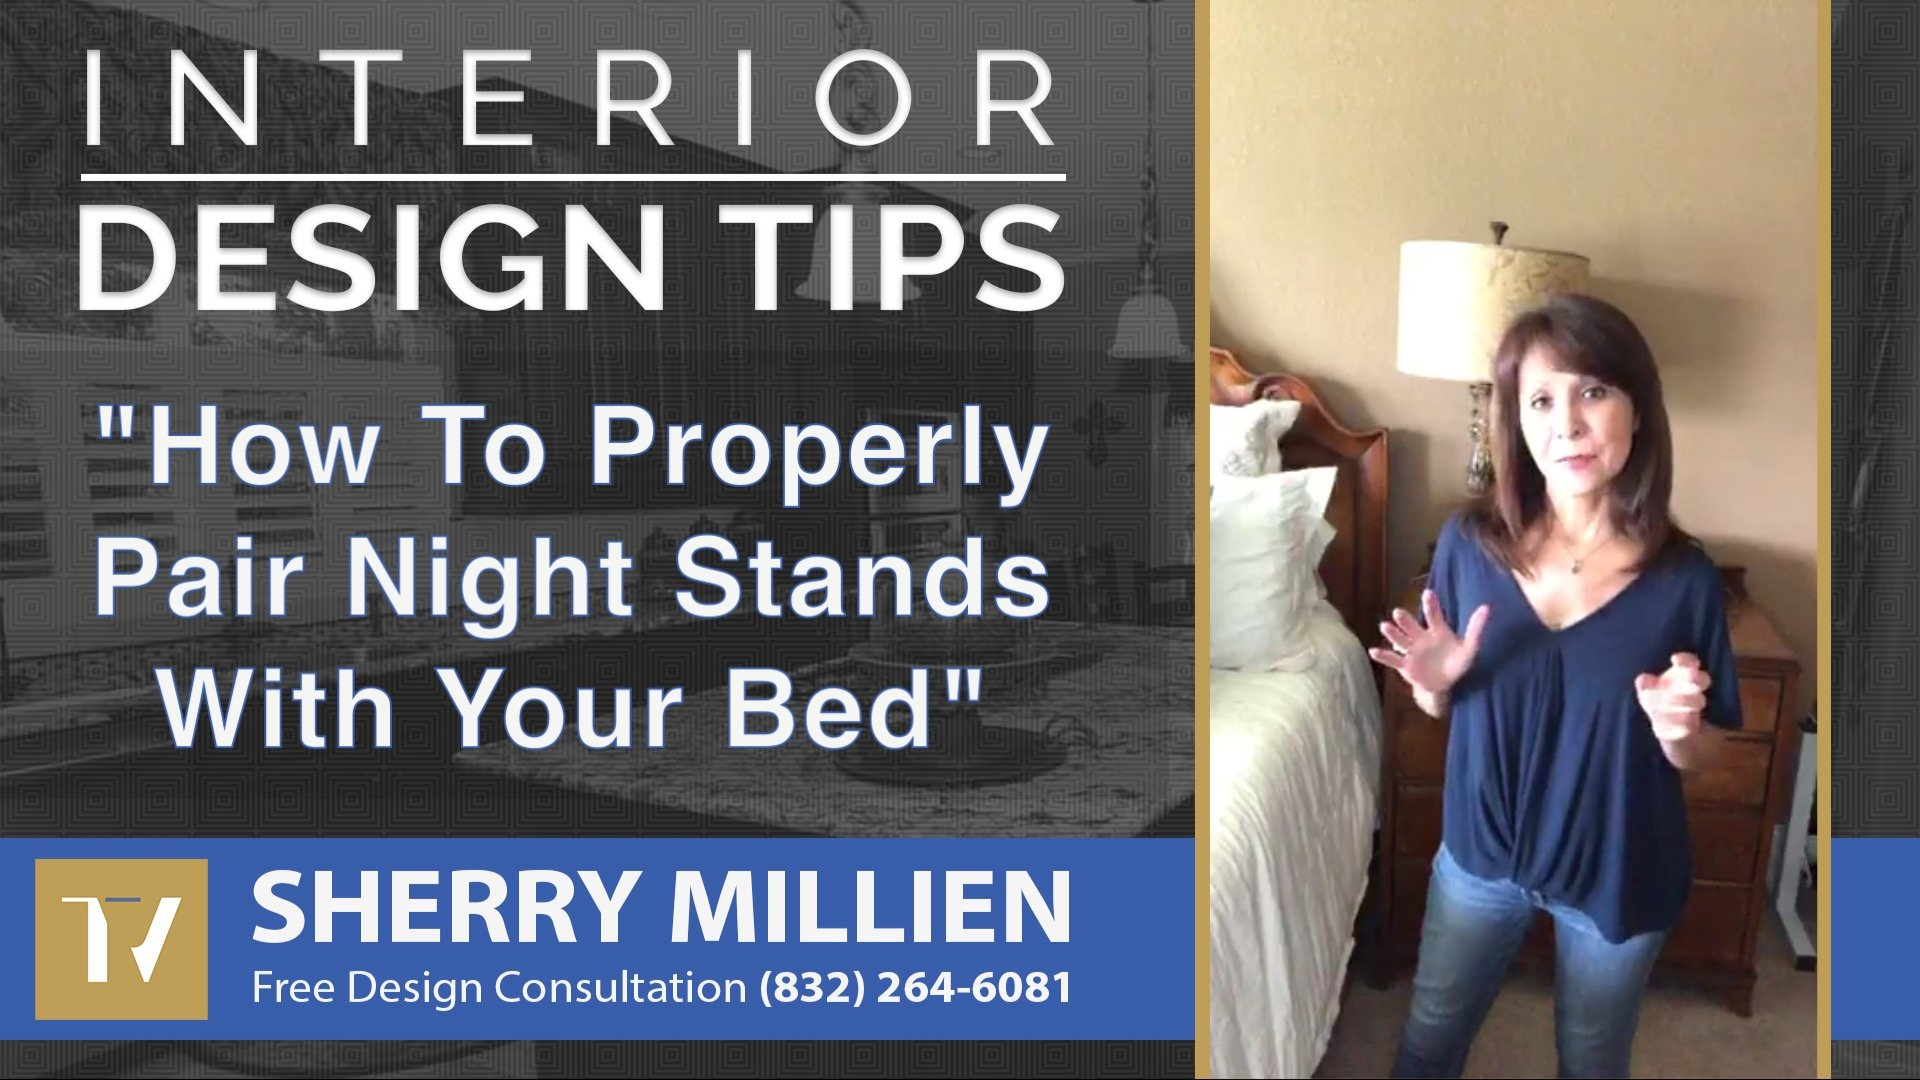 How To Properly Pair Nightstands With Your Bed